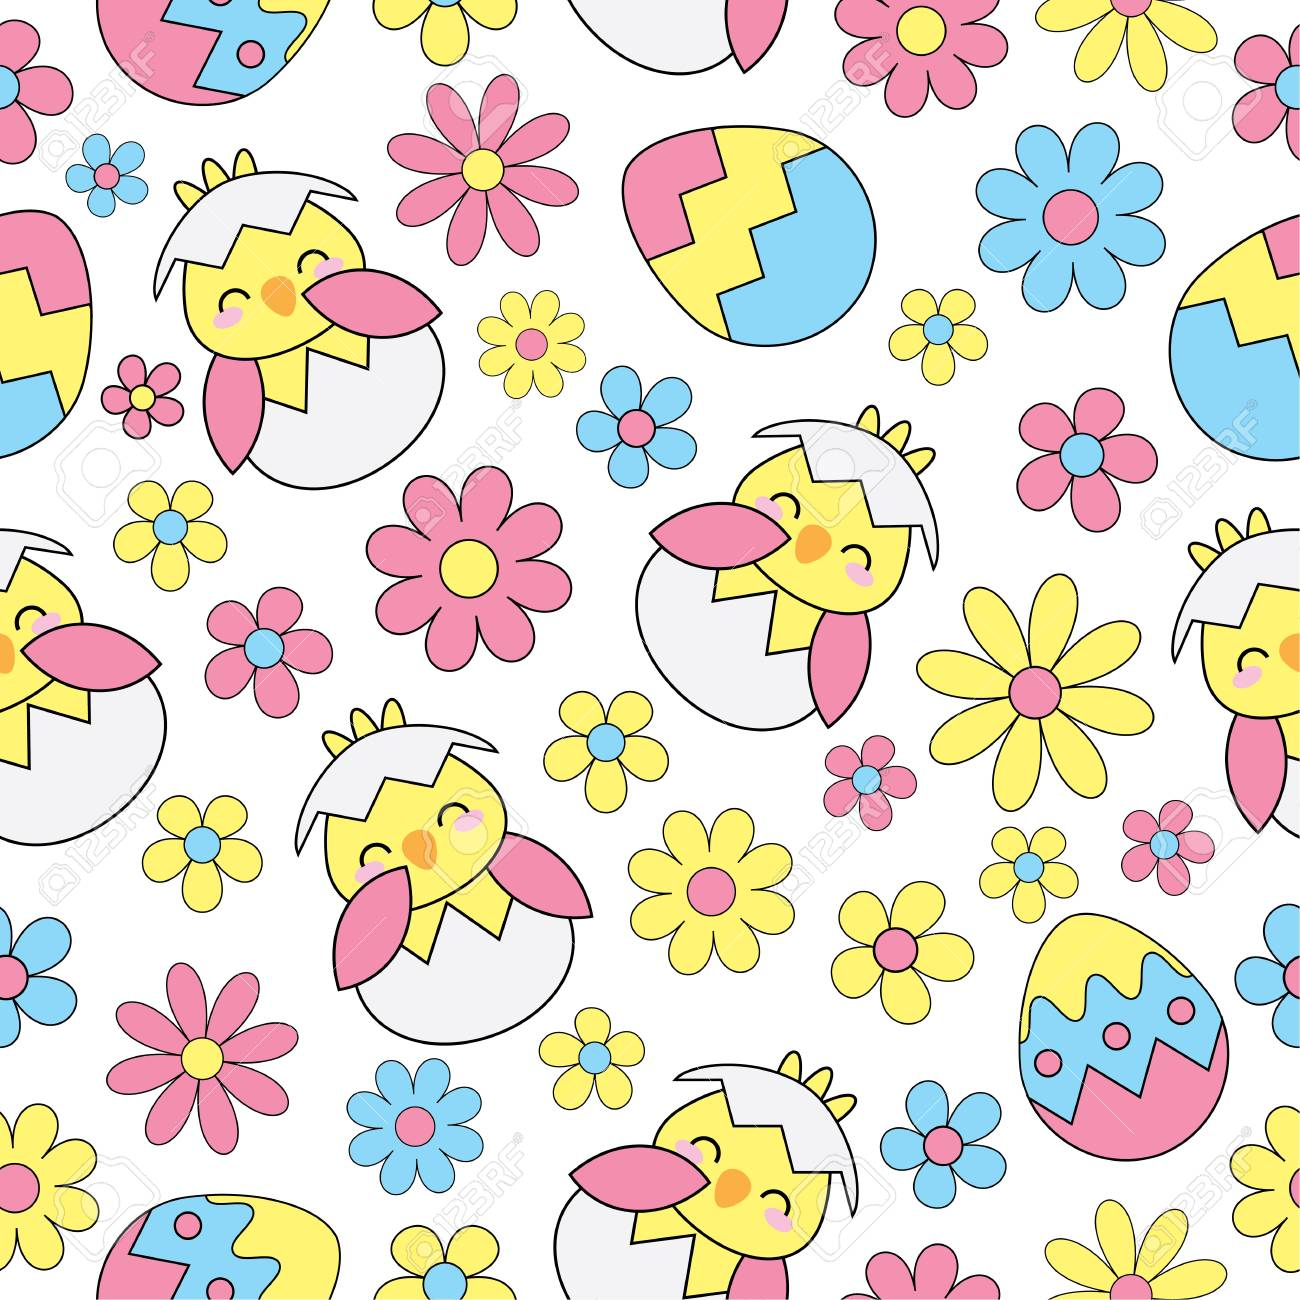 Easter Seamless Background With Cute Chick Eggs And Flowers 1300x1300